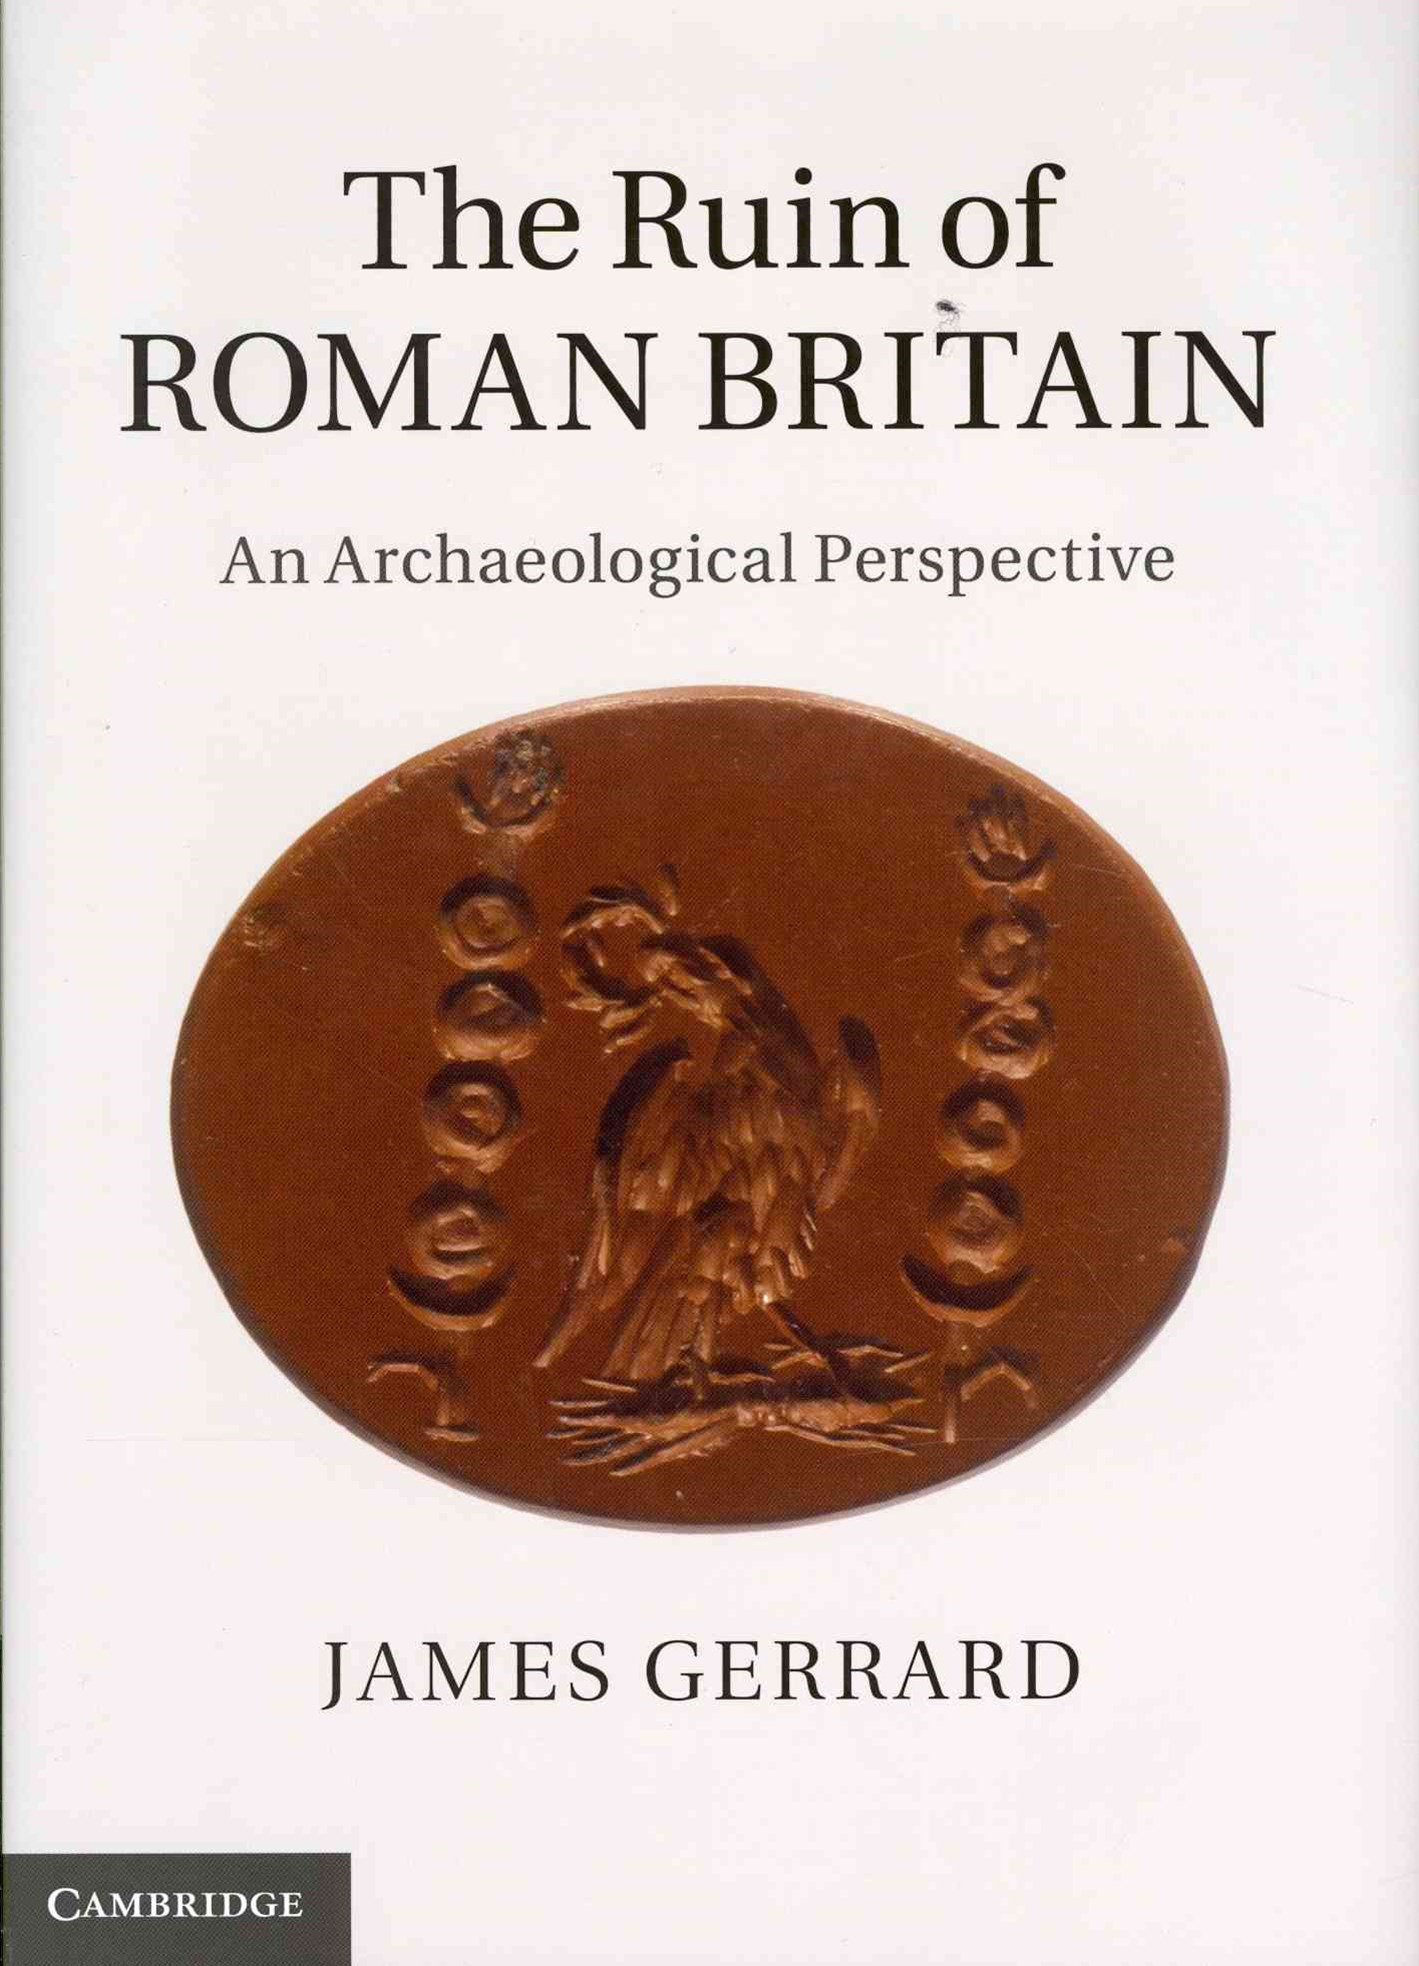 The Ruin of Roman Britain